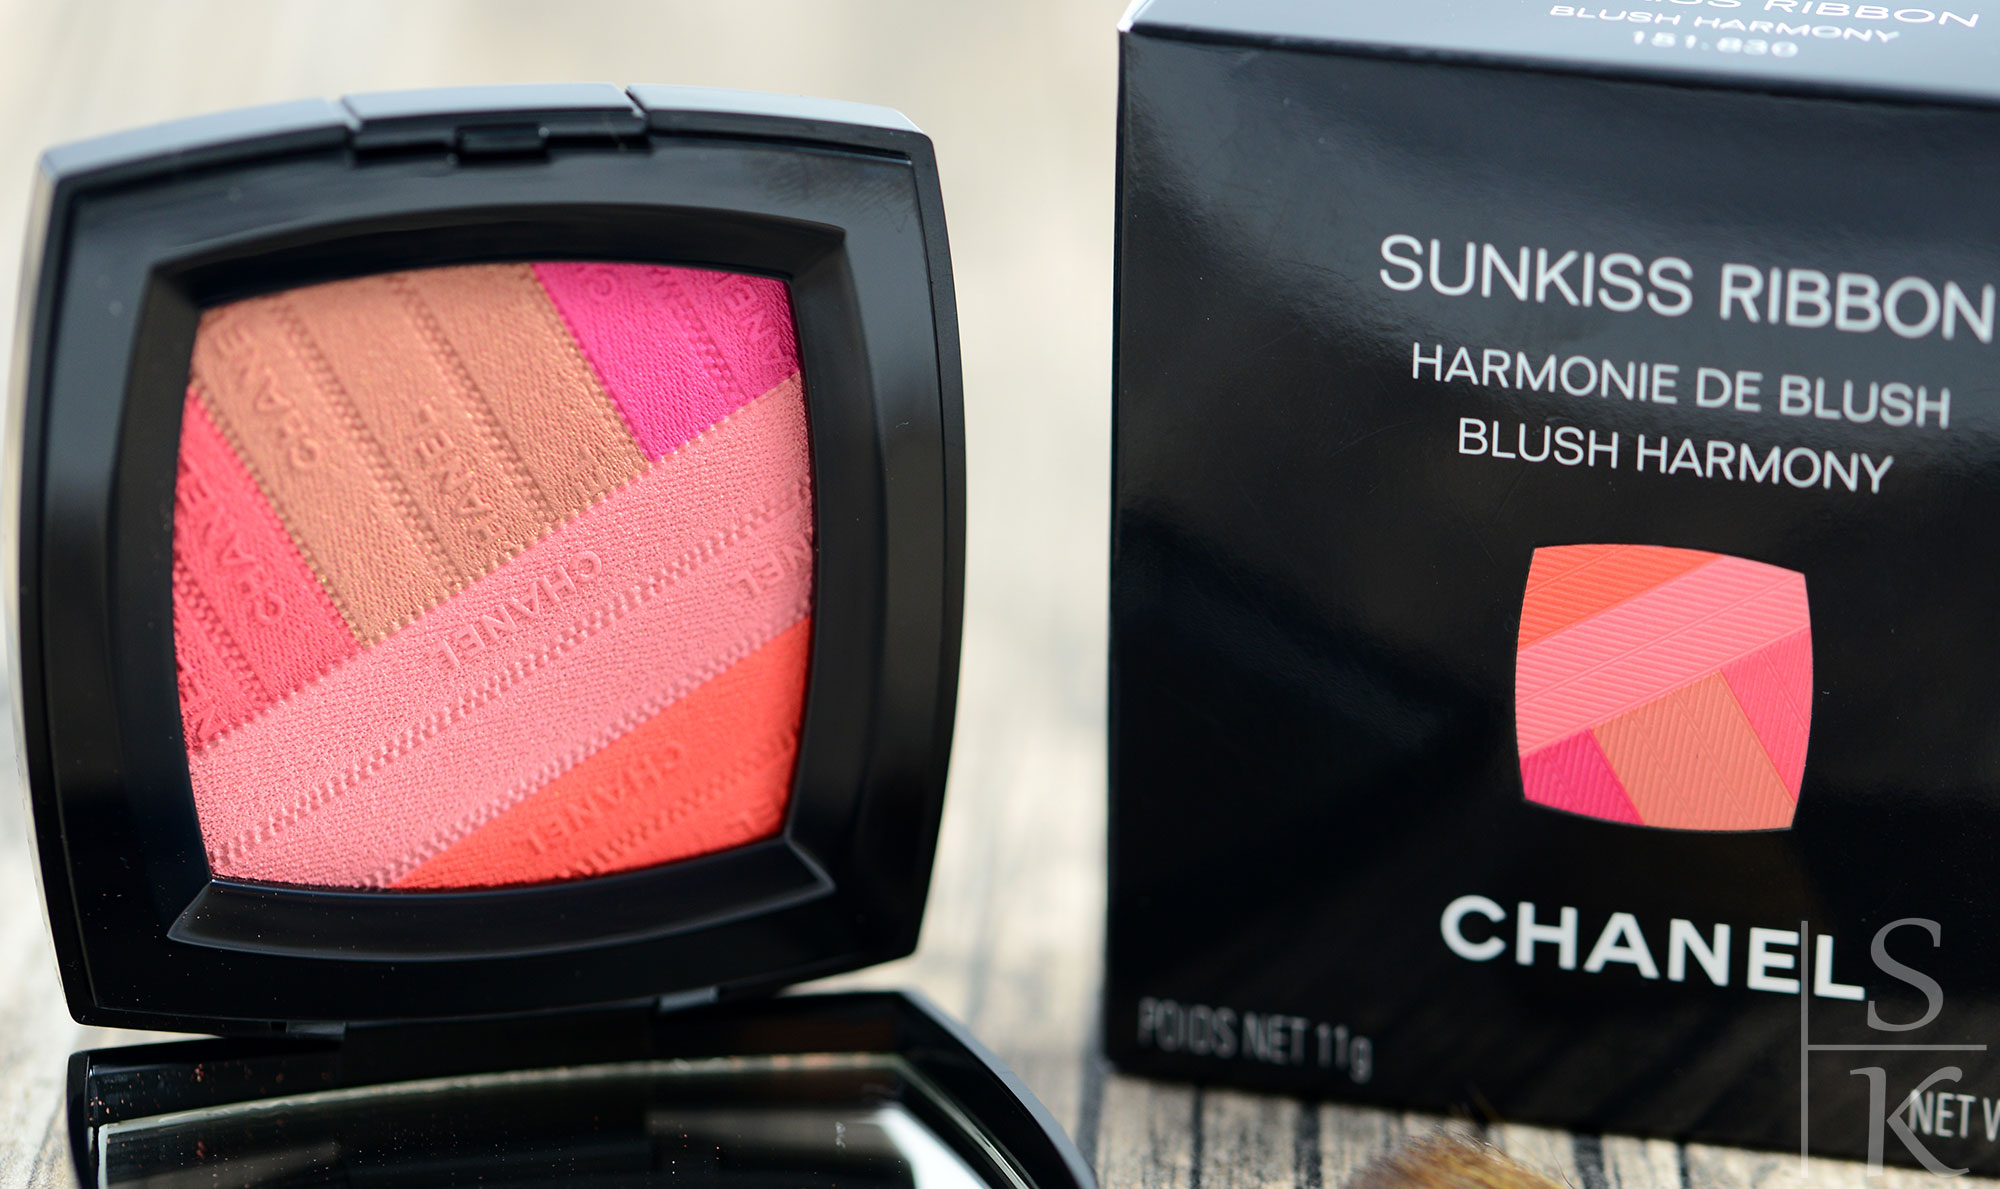 Chanel - LA Sunrise Sunkiss Ribbon Blush Harmony